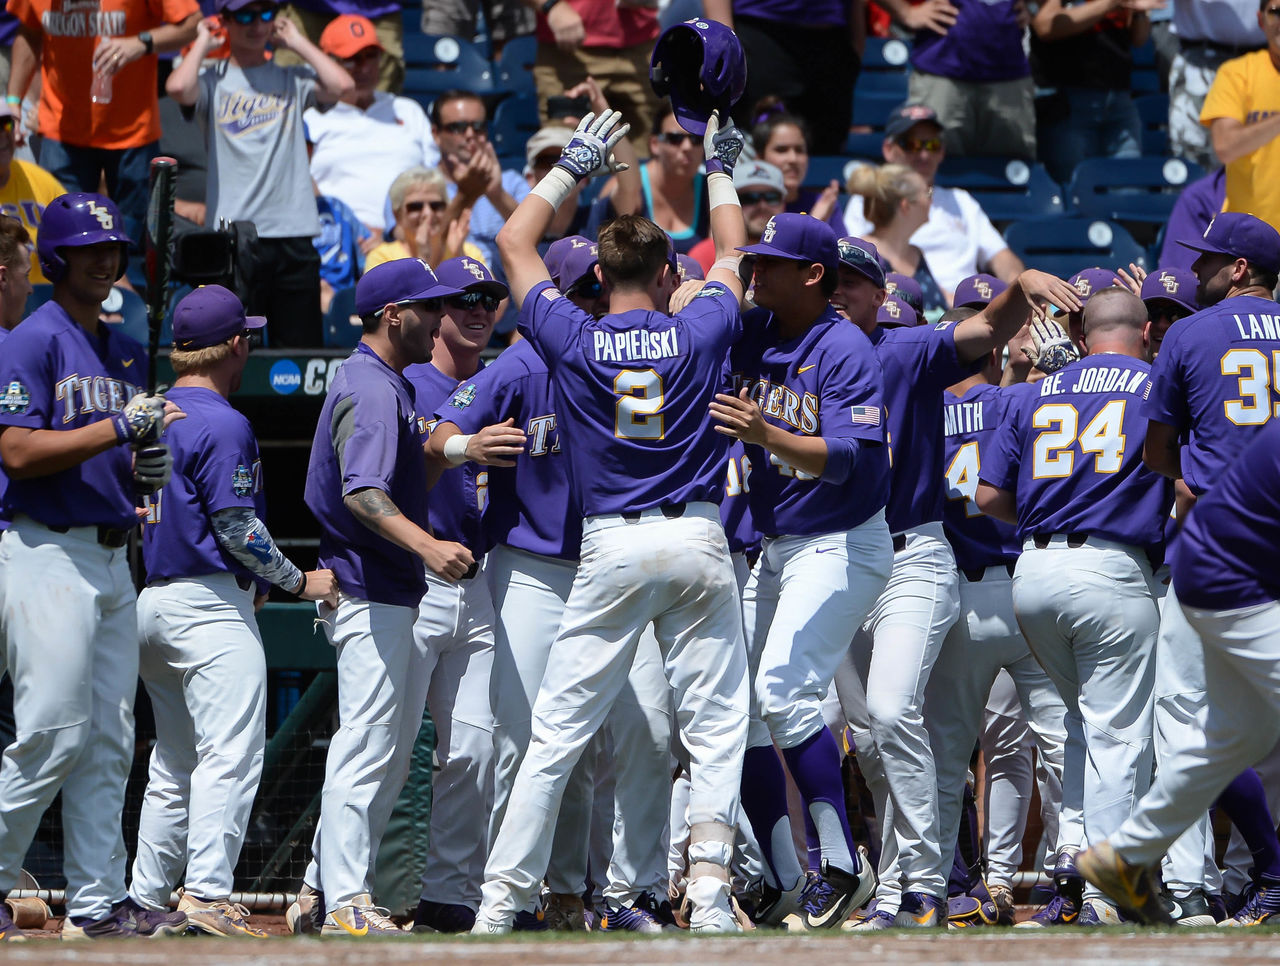 Cropped 2017 06 24t204613z 1879617506 nocid rtrmadp 3 ncaa baseball college world series lsu vs oregon state